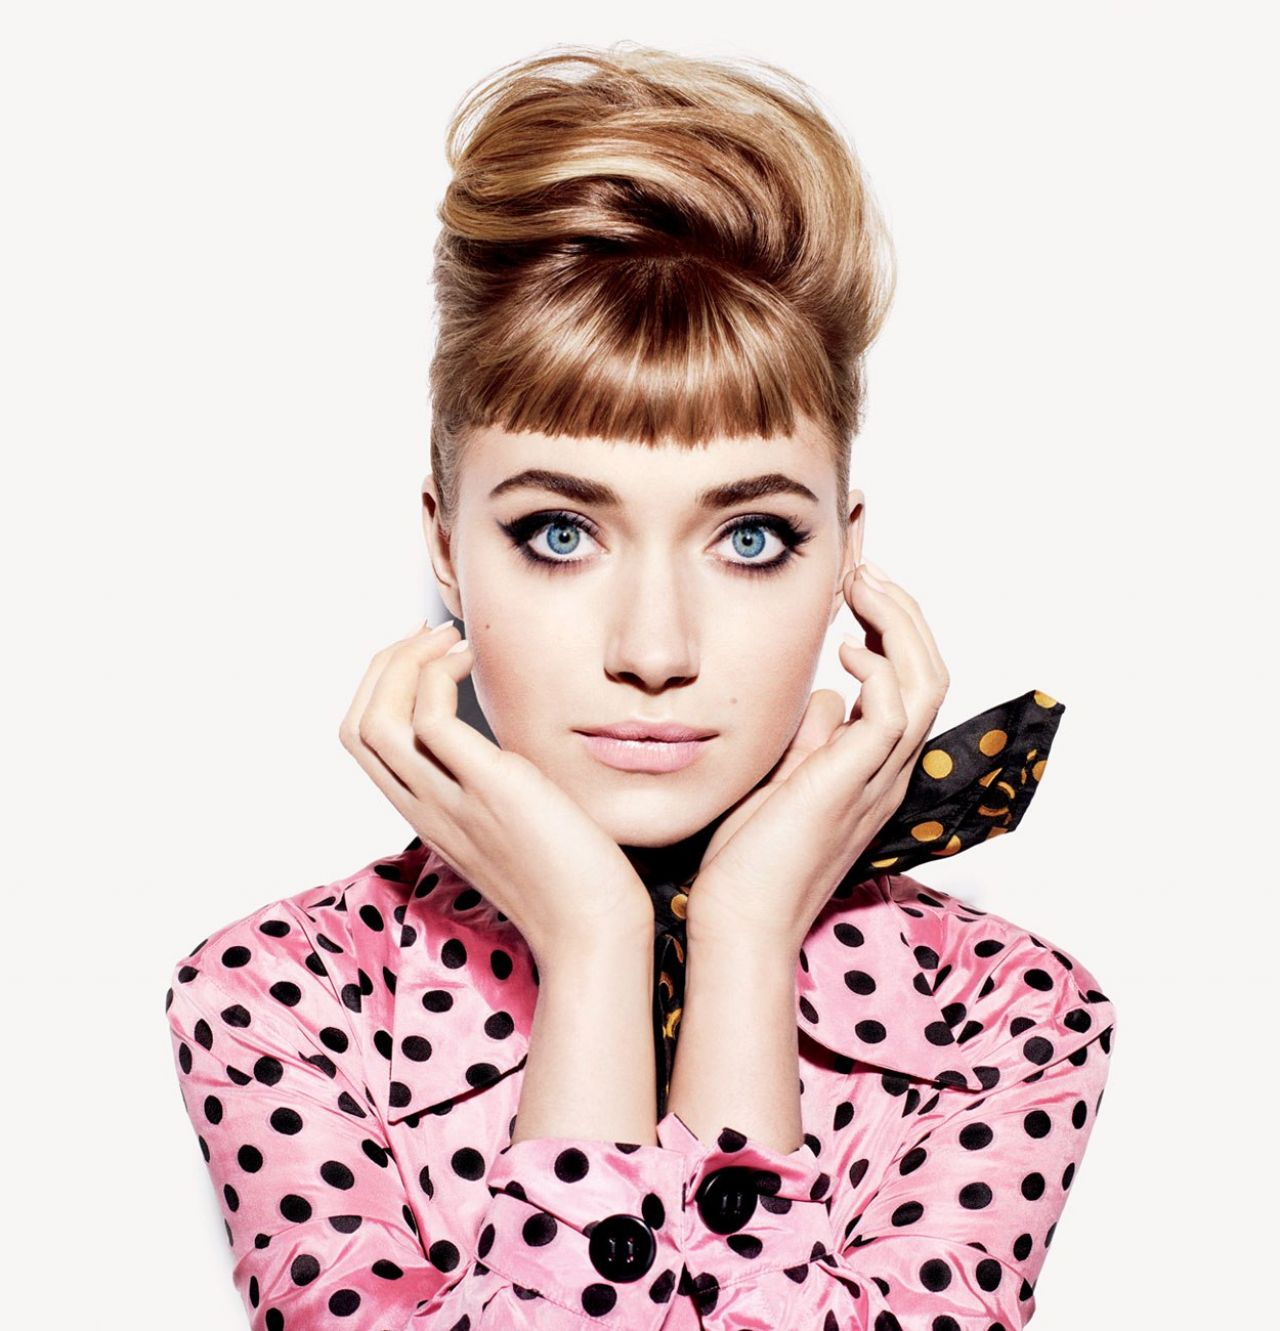 Imogen Poots - VANITY FAIR Magazine - December 2013 Issue - Miguel Reveriego Photoshoot